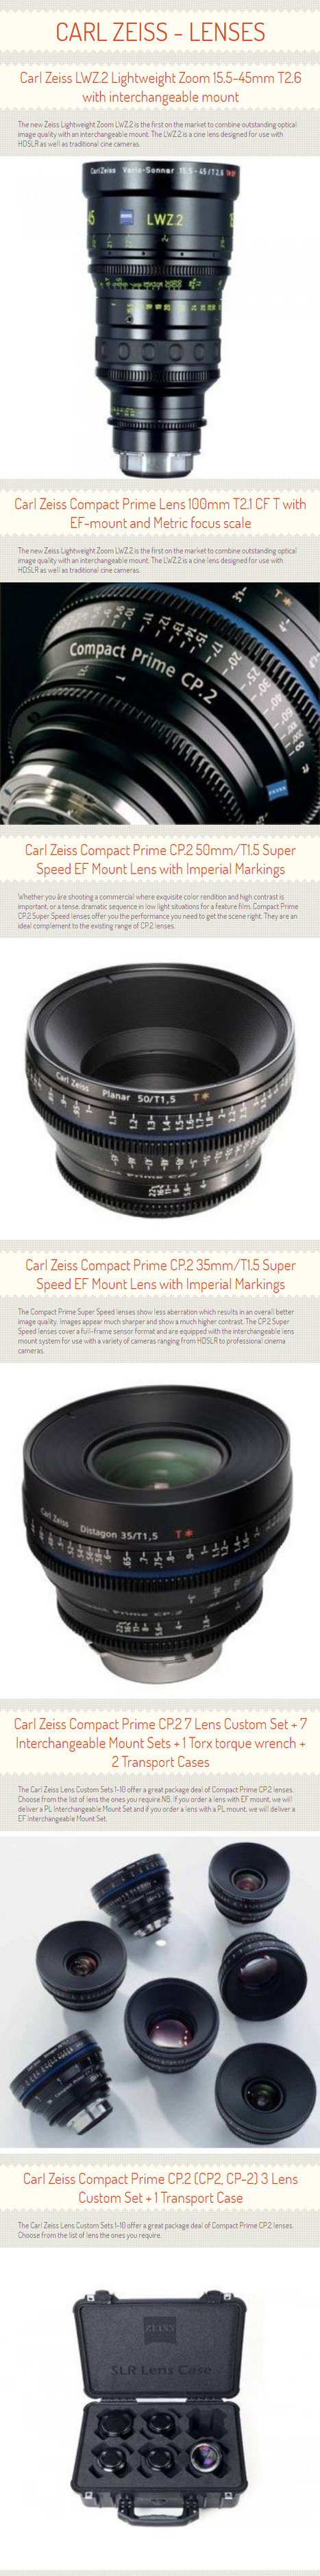 Carl Zeiss - Live Sport Zooming with Compact Lens Set - www.digibroadcast.com | digibroadcast | Scoop.it